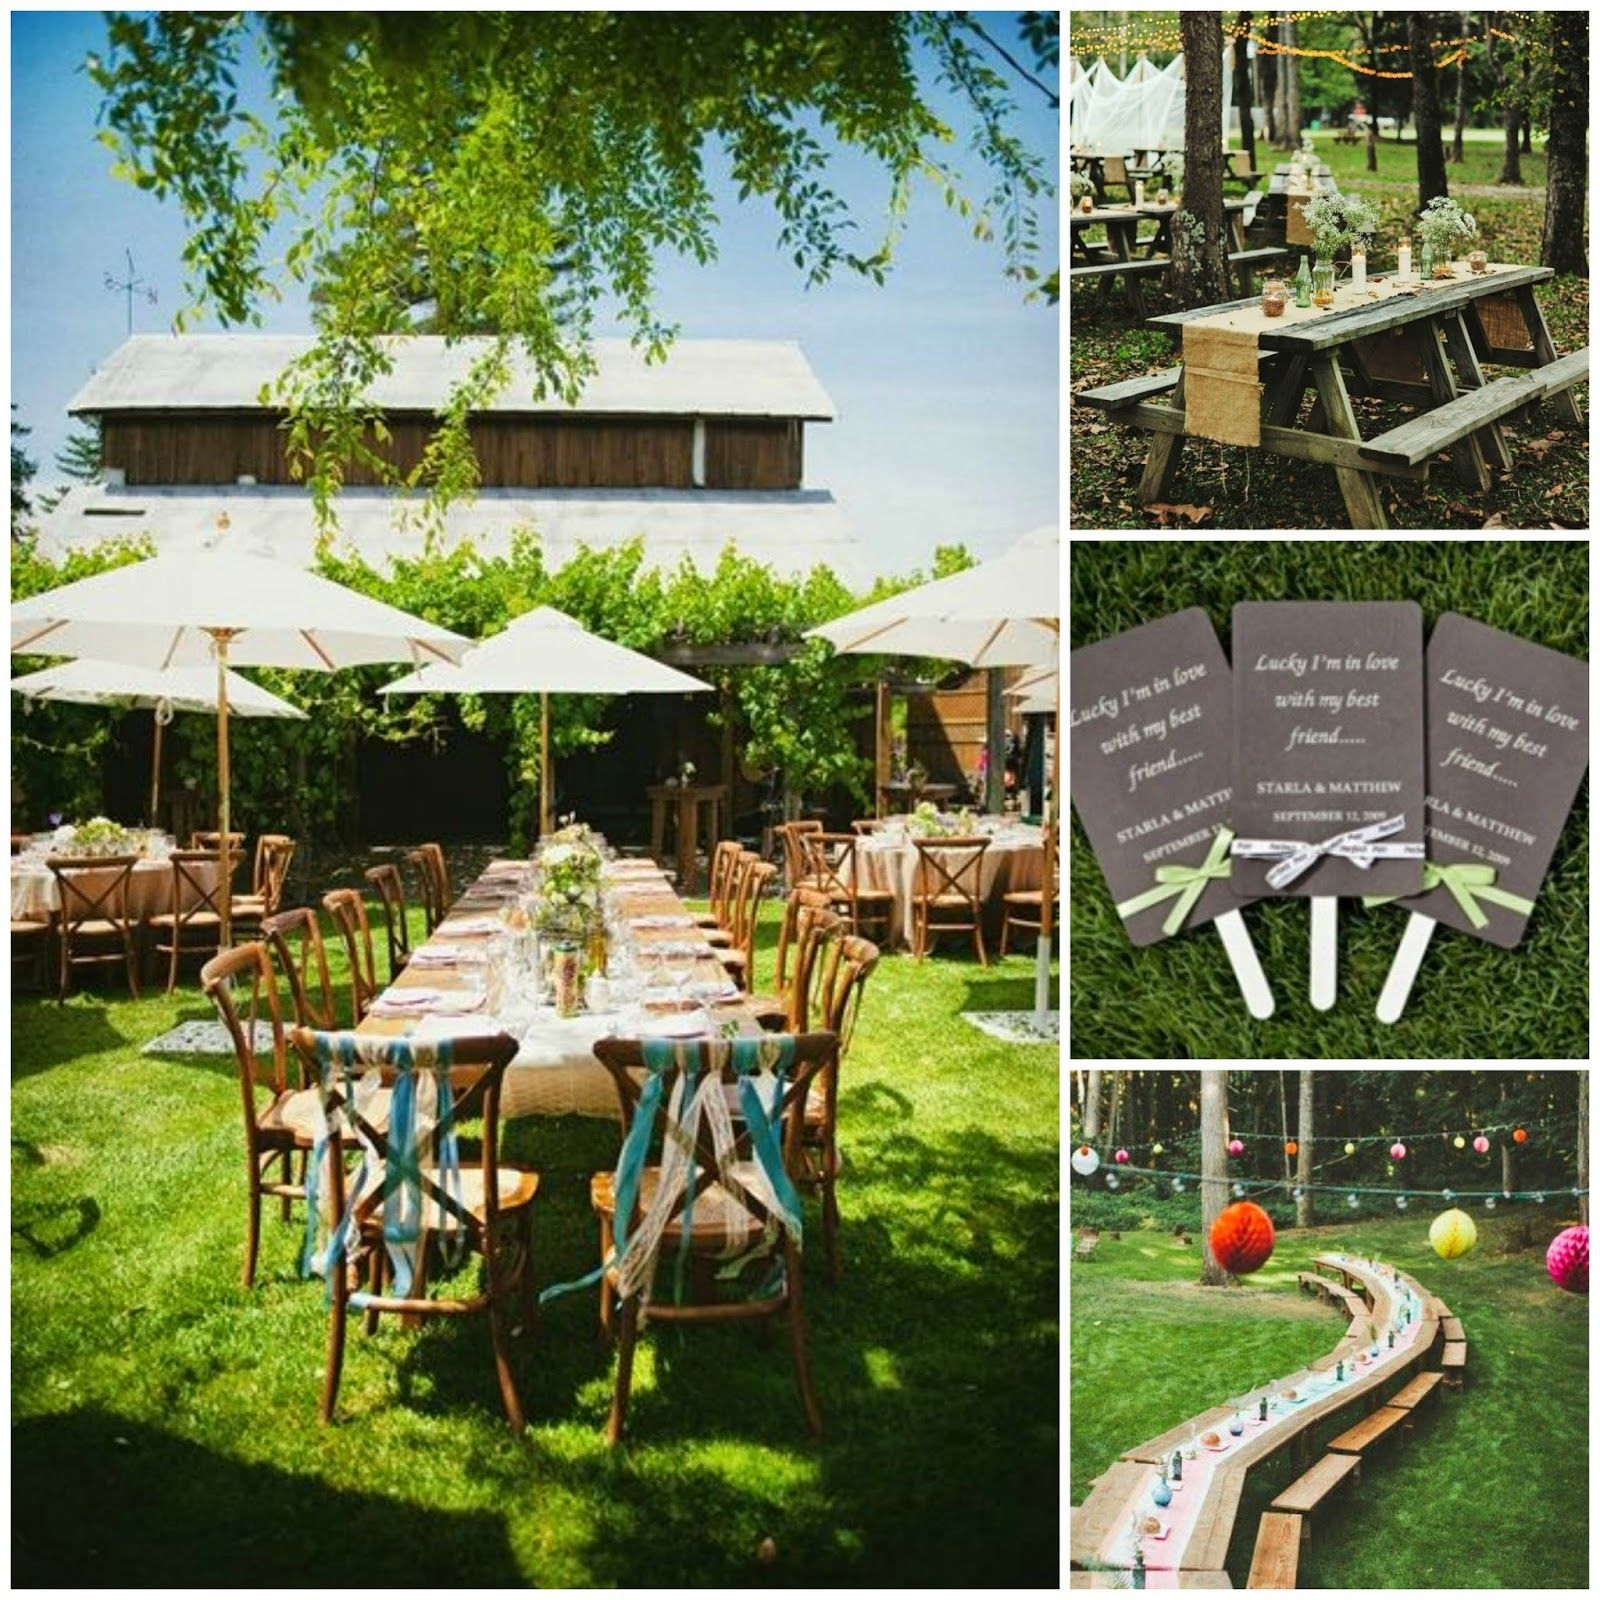 Spring Wedding Reception Ideas: Reception Setup For Summer Wedding